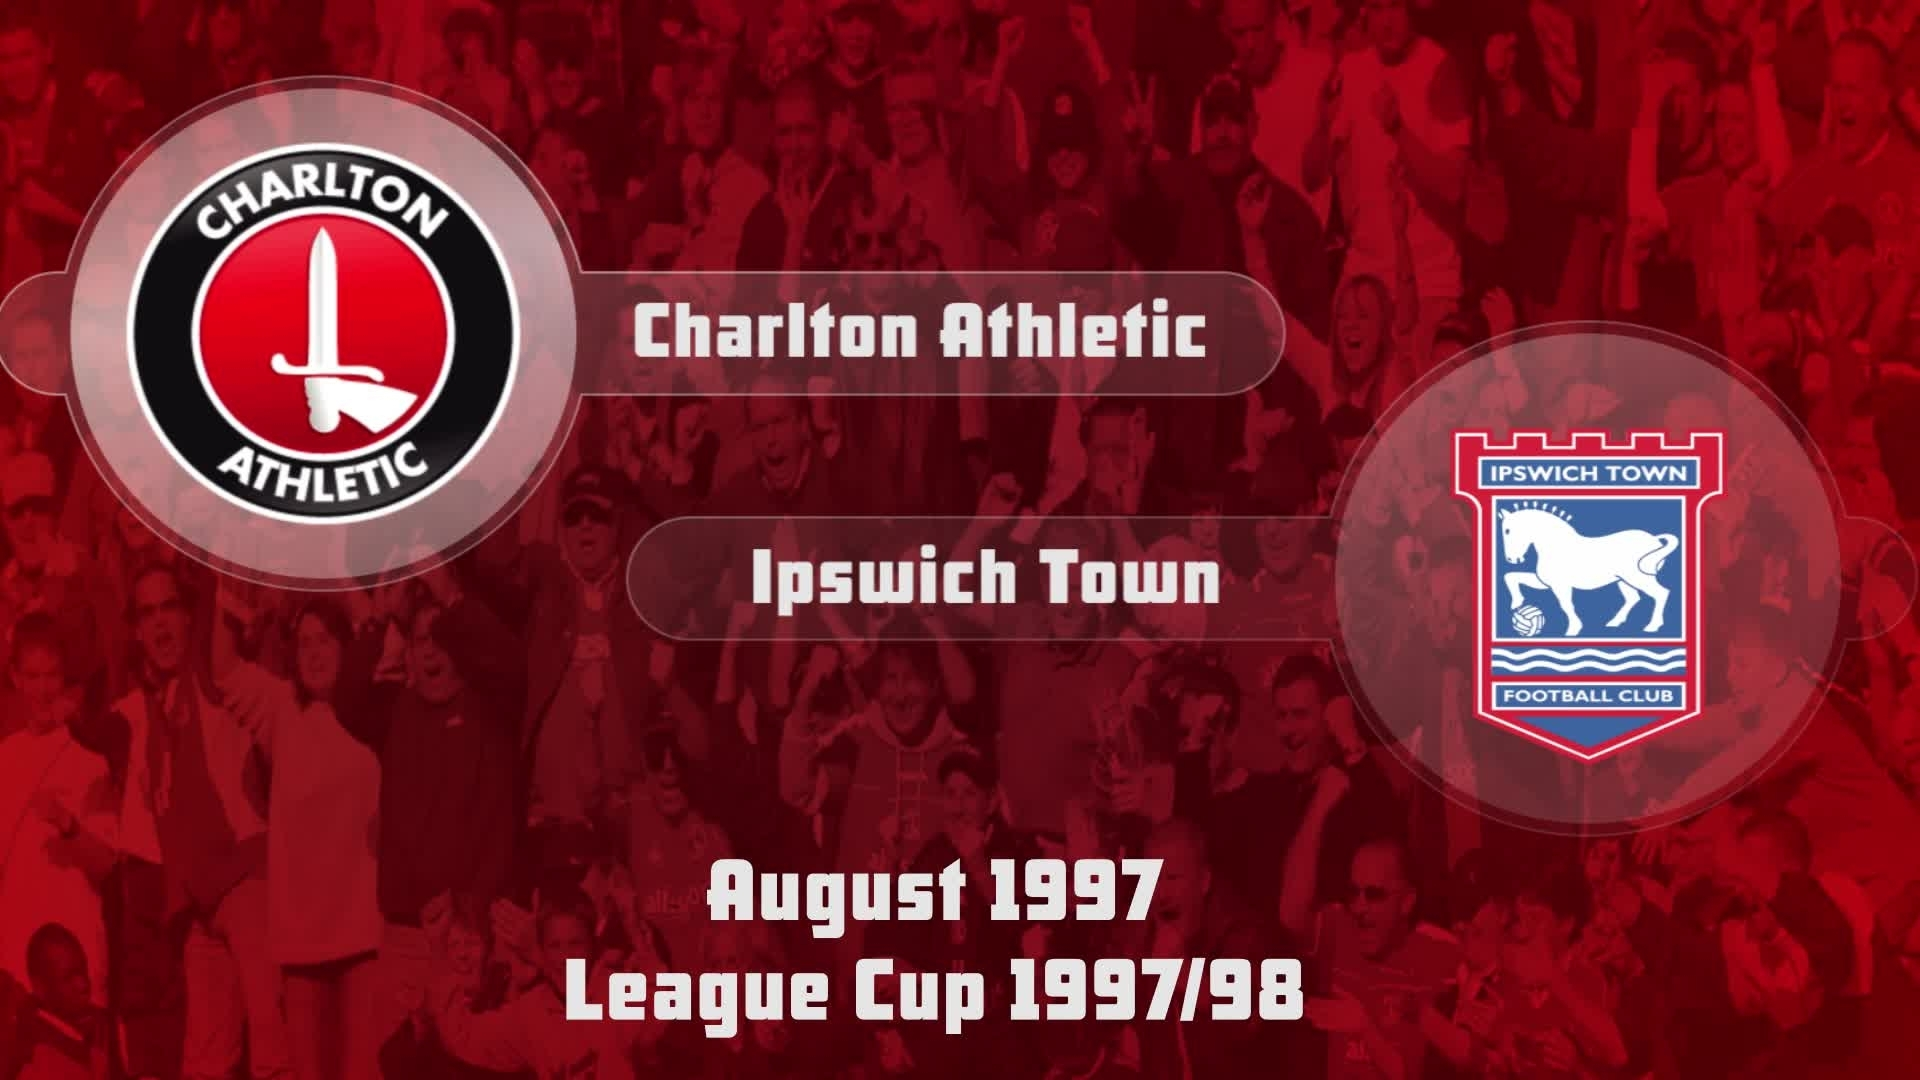 02 HIGHLIGHTS |  Charlton 0 Ipswich Town 1 (League Cup Aug 1997)